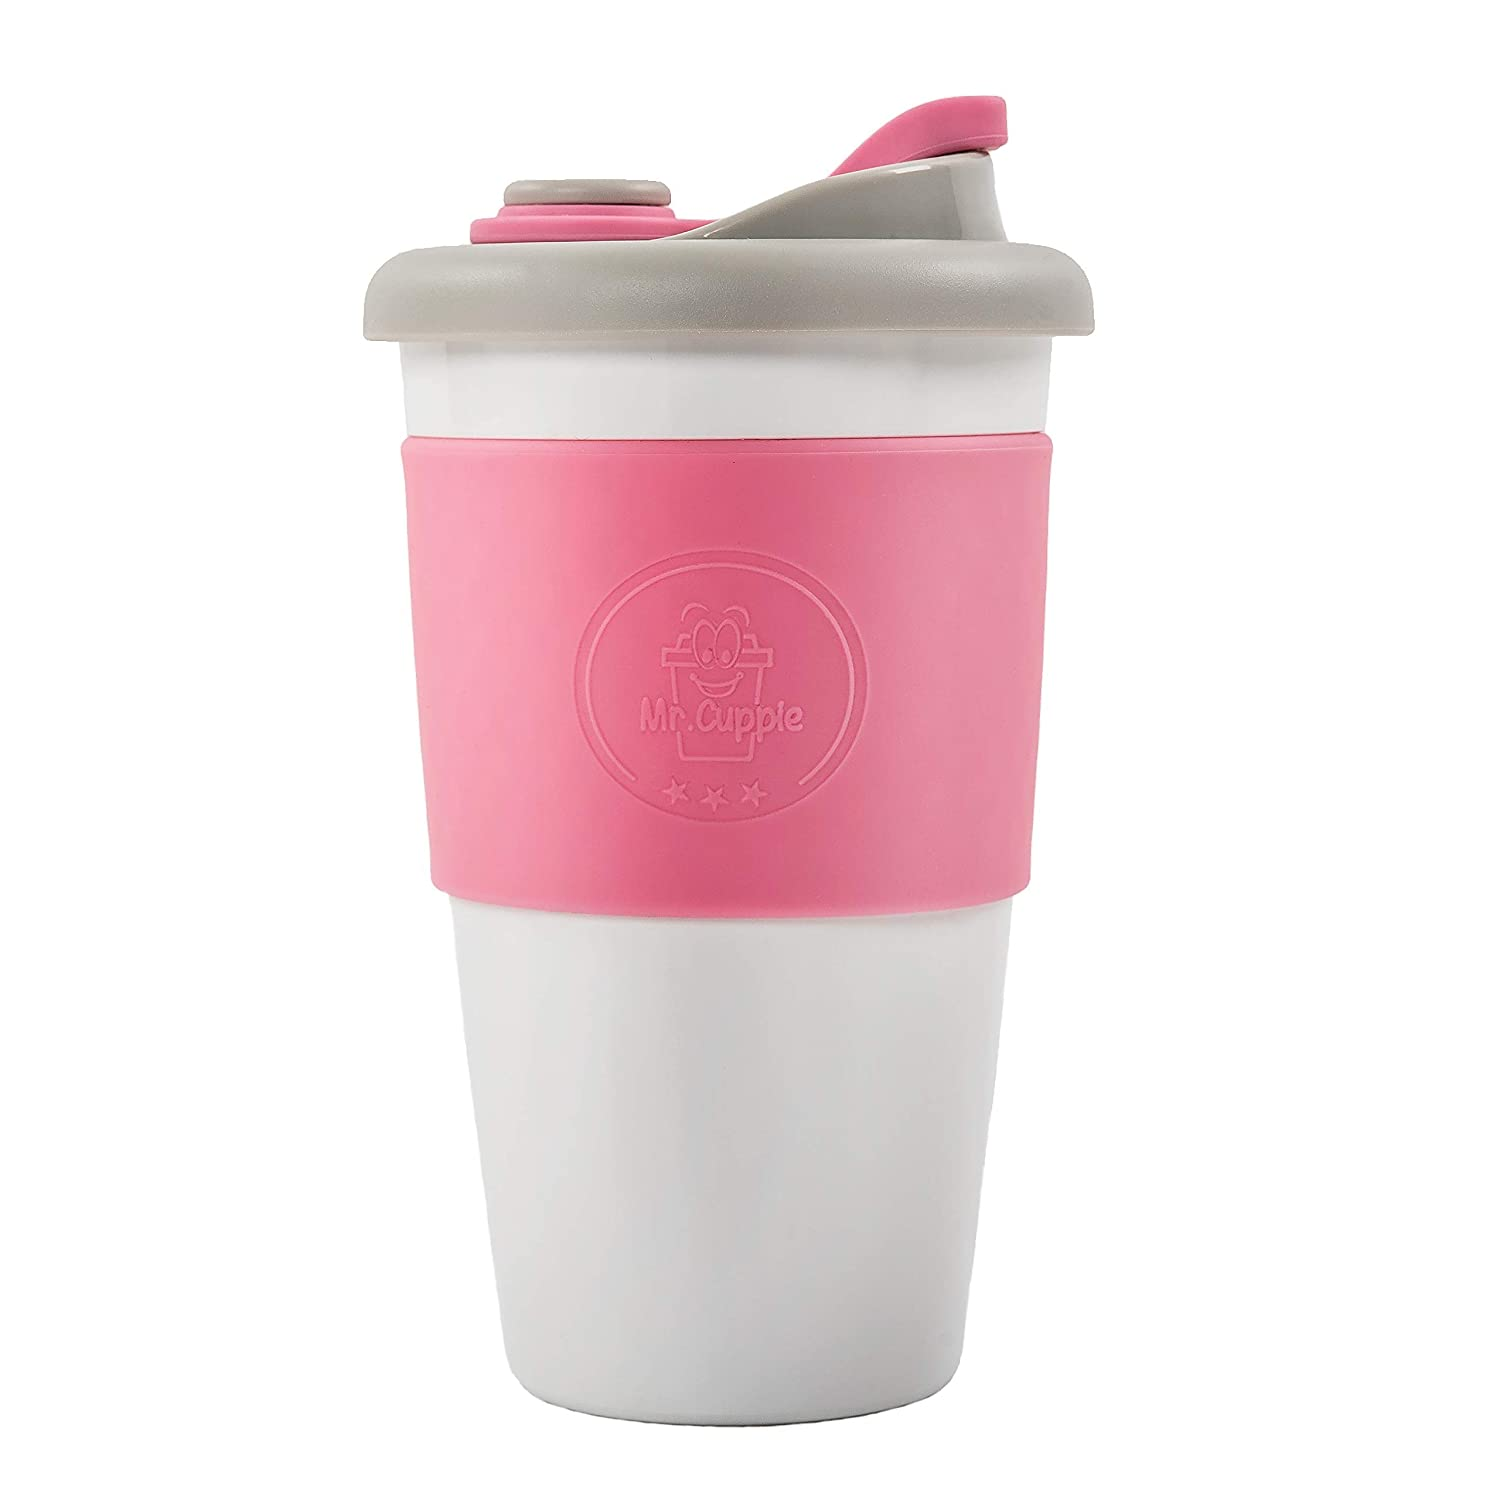 Mr. Cuppie Reusable Cup with Lid, Coffee To Go Travel Mug made of Eco-friendly BPA-Free Material with Non-Slip Sleeve, Dishwasher and Microwave Safe Insulated Coffee Mug, 16oz